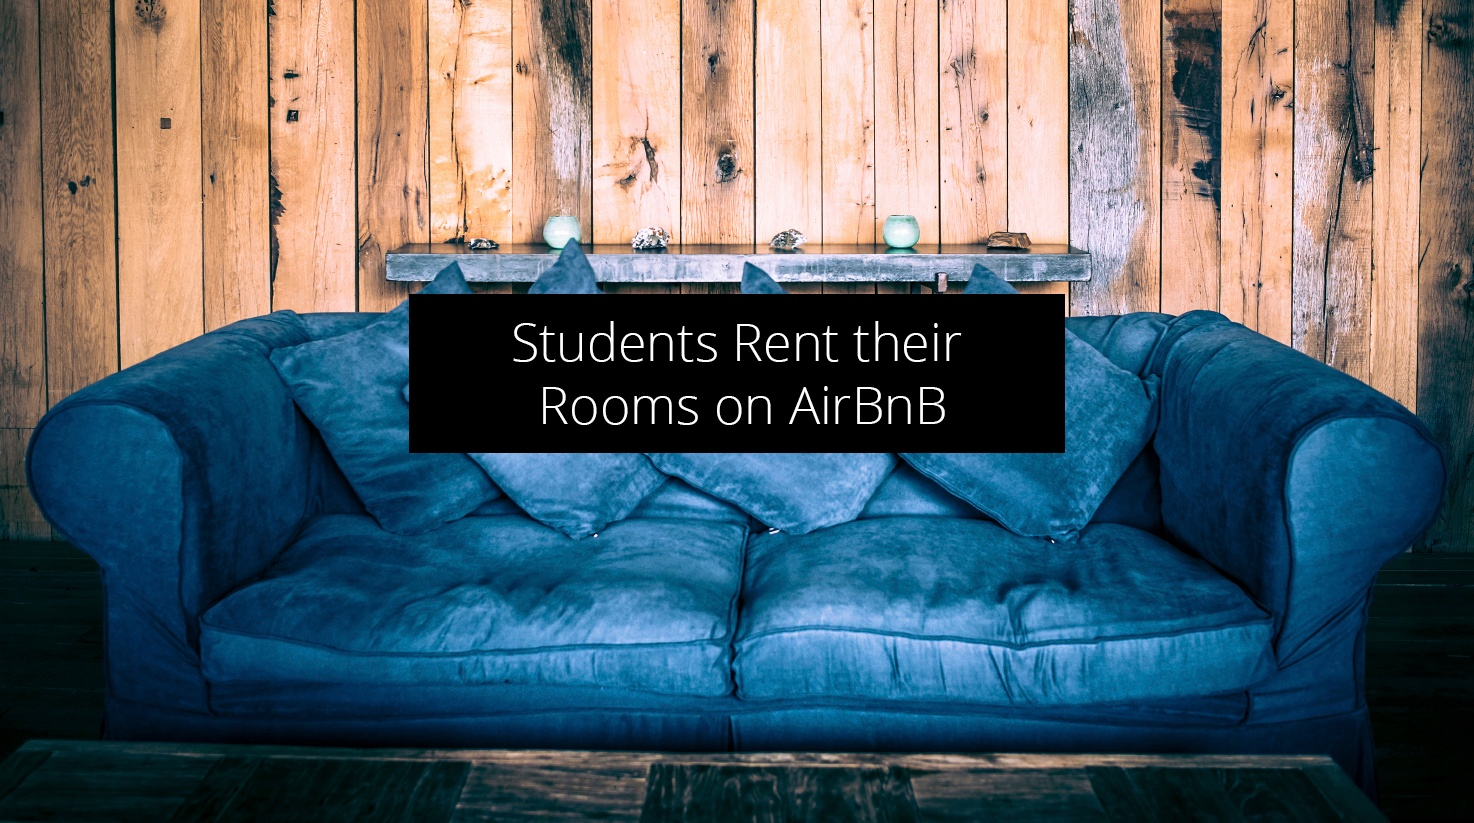 student_rent_room_on_airbnb.jpg